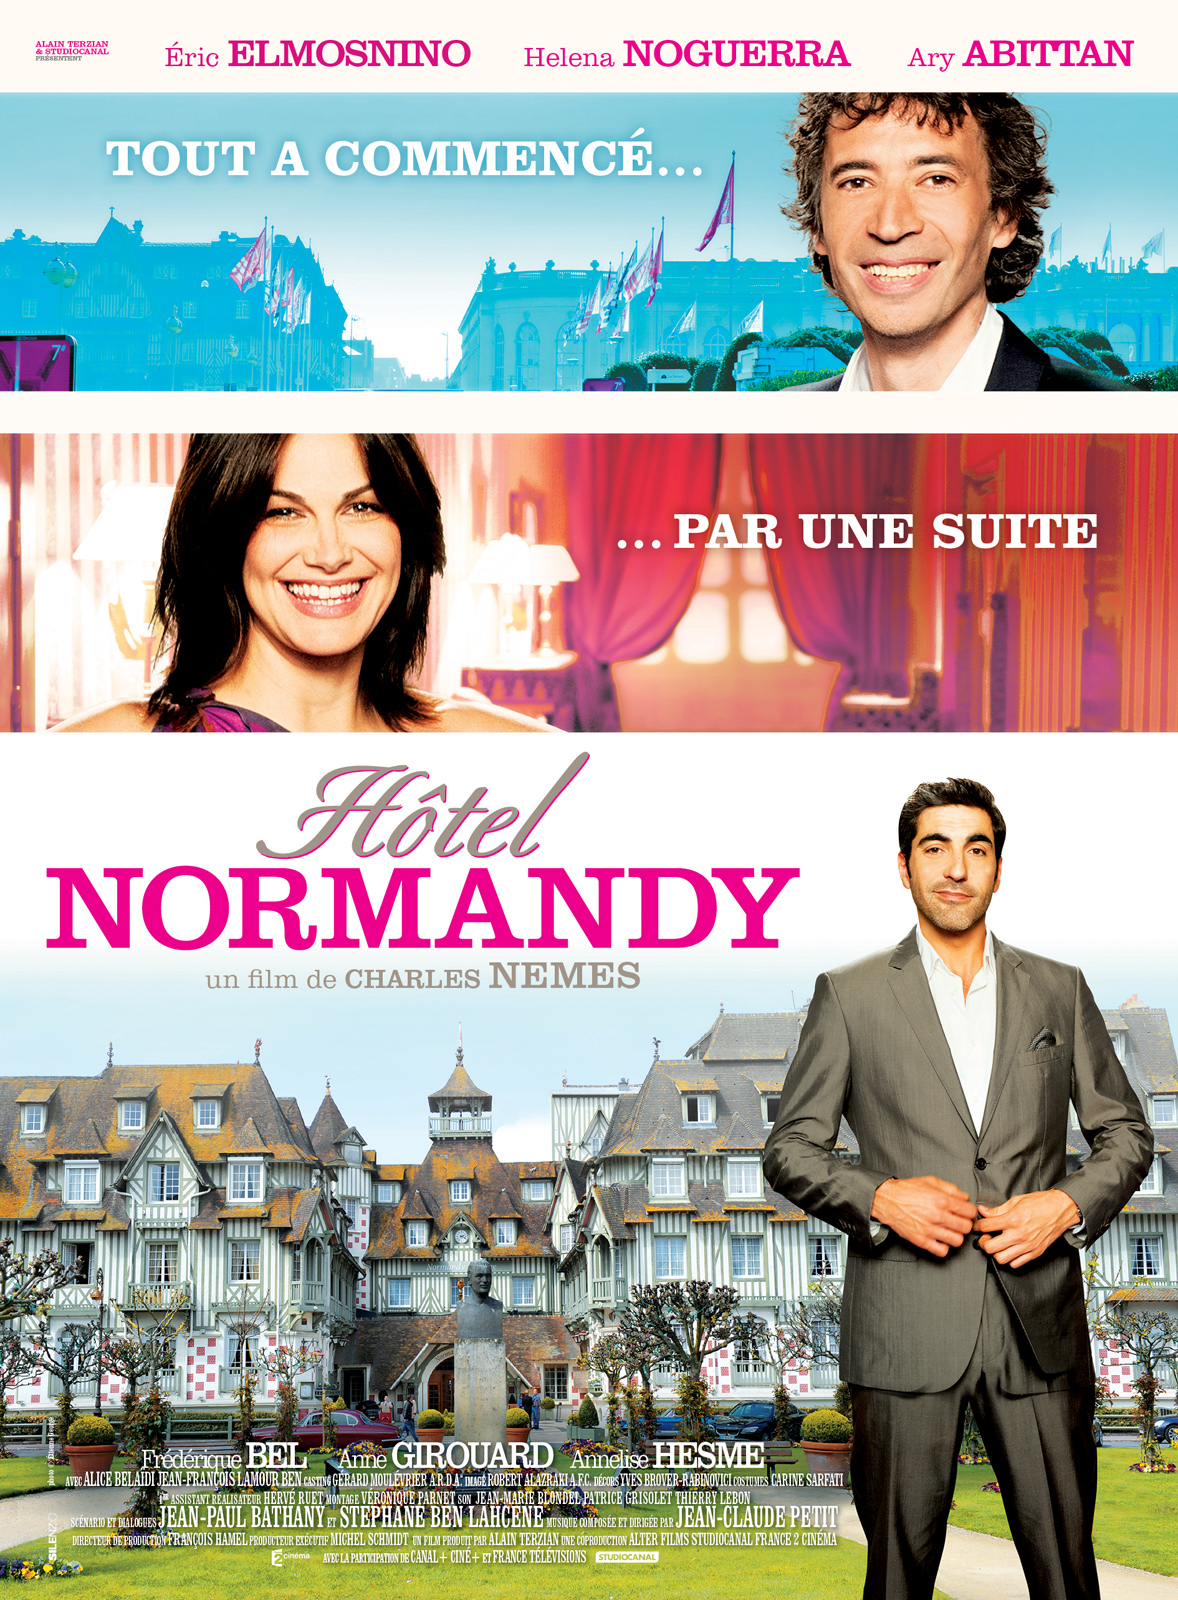 Hotel Normandy (2013) [FRENCH DTS] [Blu-Ray 720p]